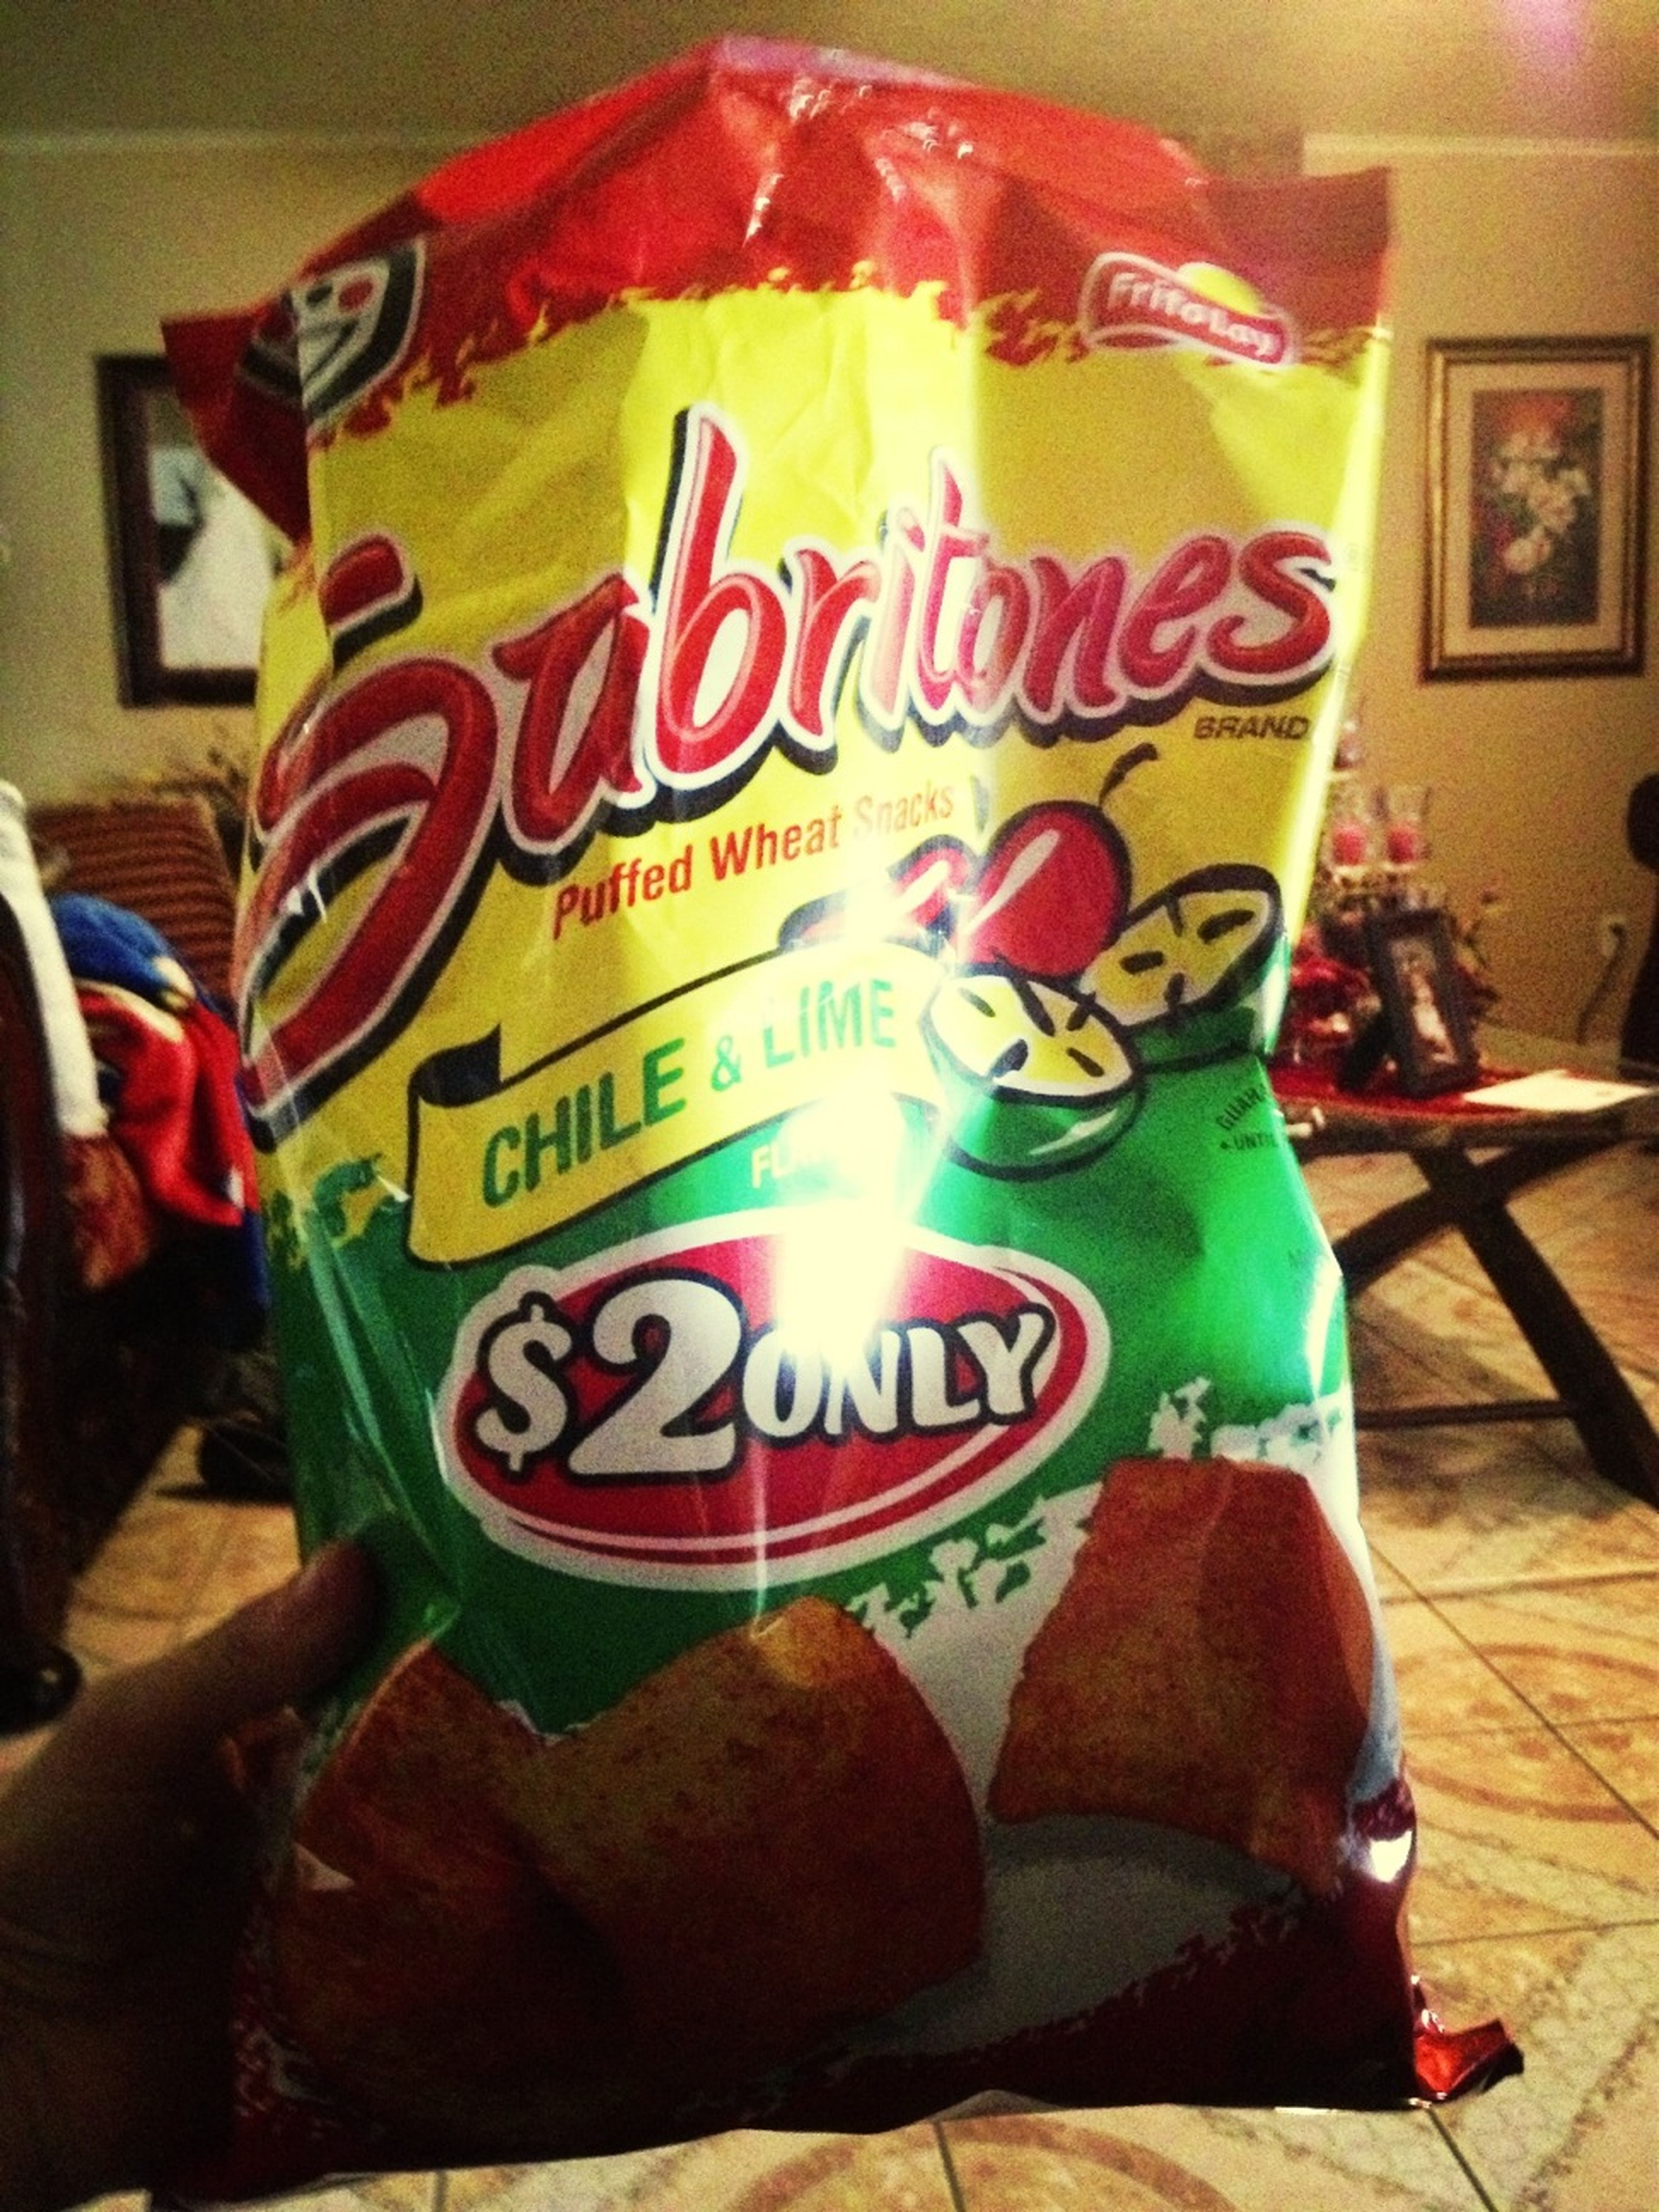 Best Mexican Chips Ever!